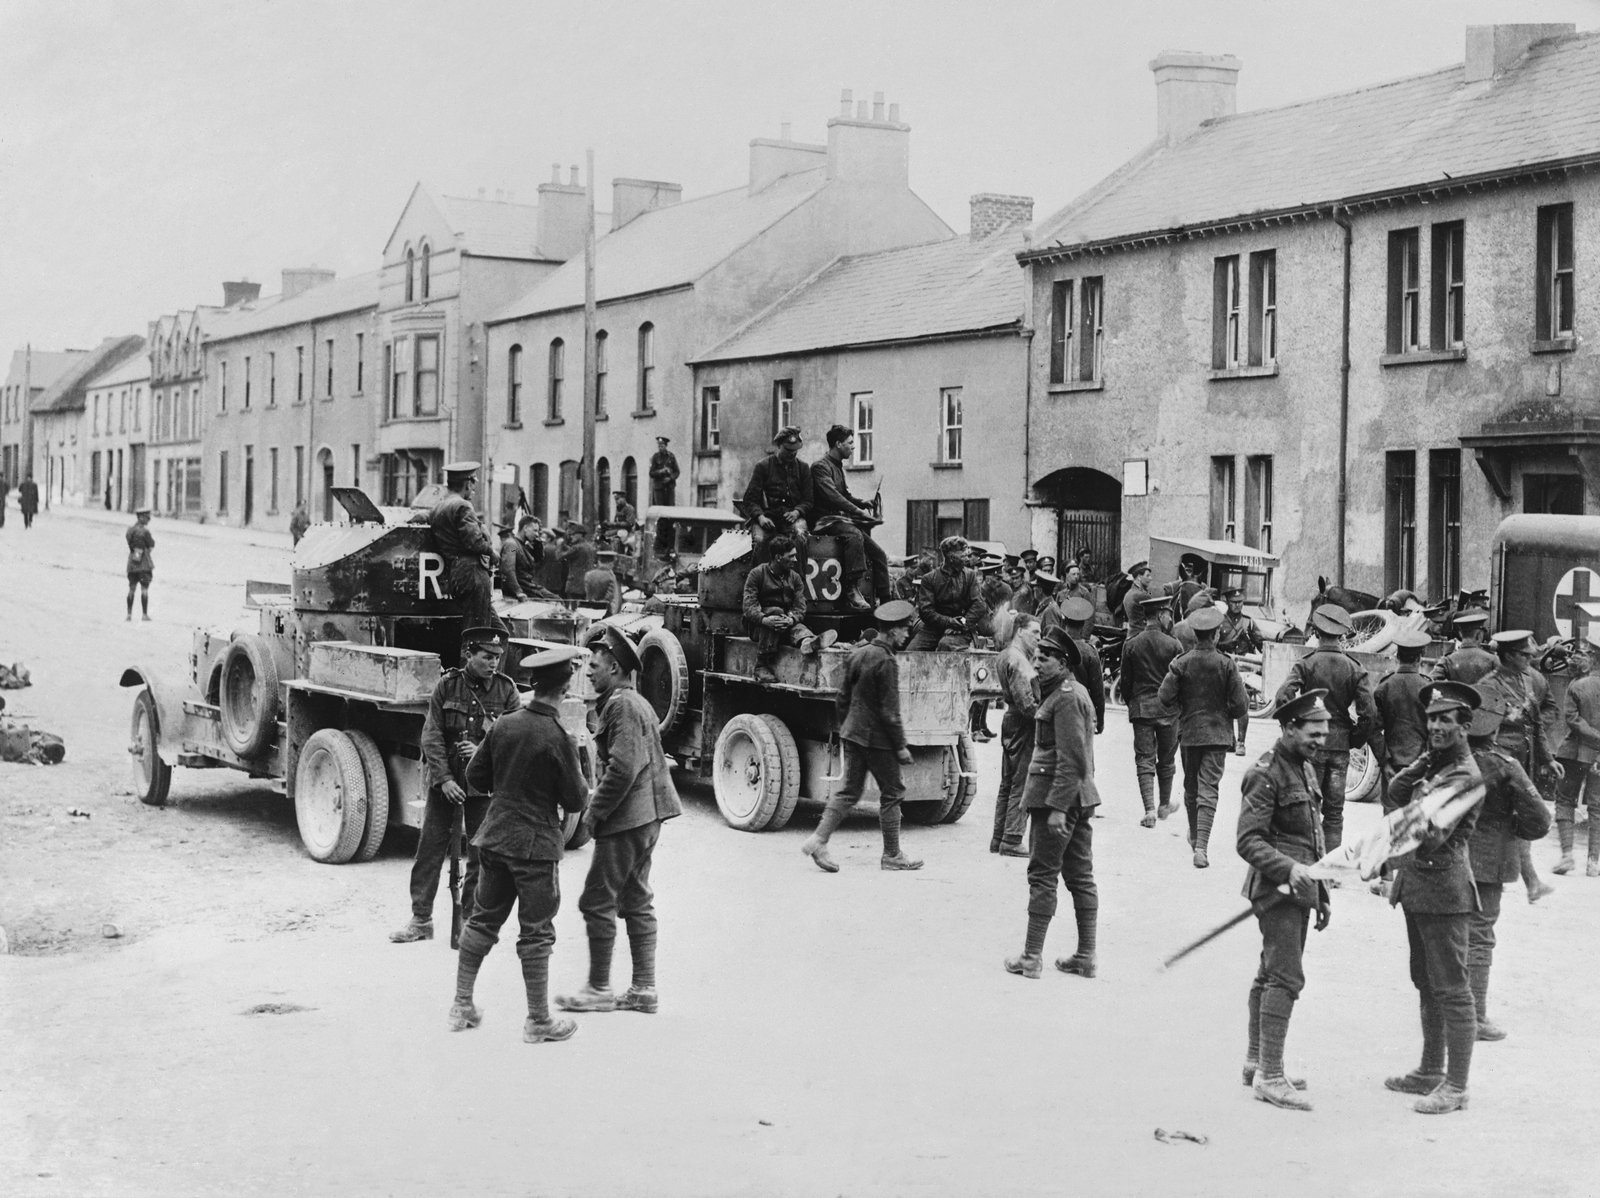 Image - British soldiers in Belleek, Co Fermanagh, in June 1922. Photo: Getty Images